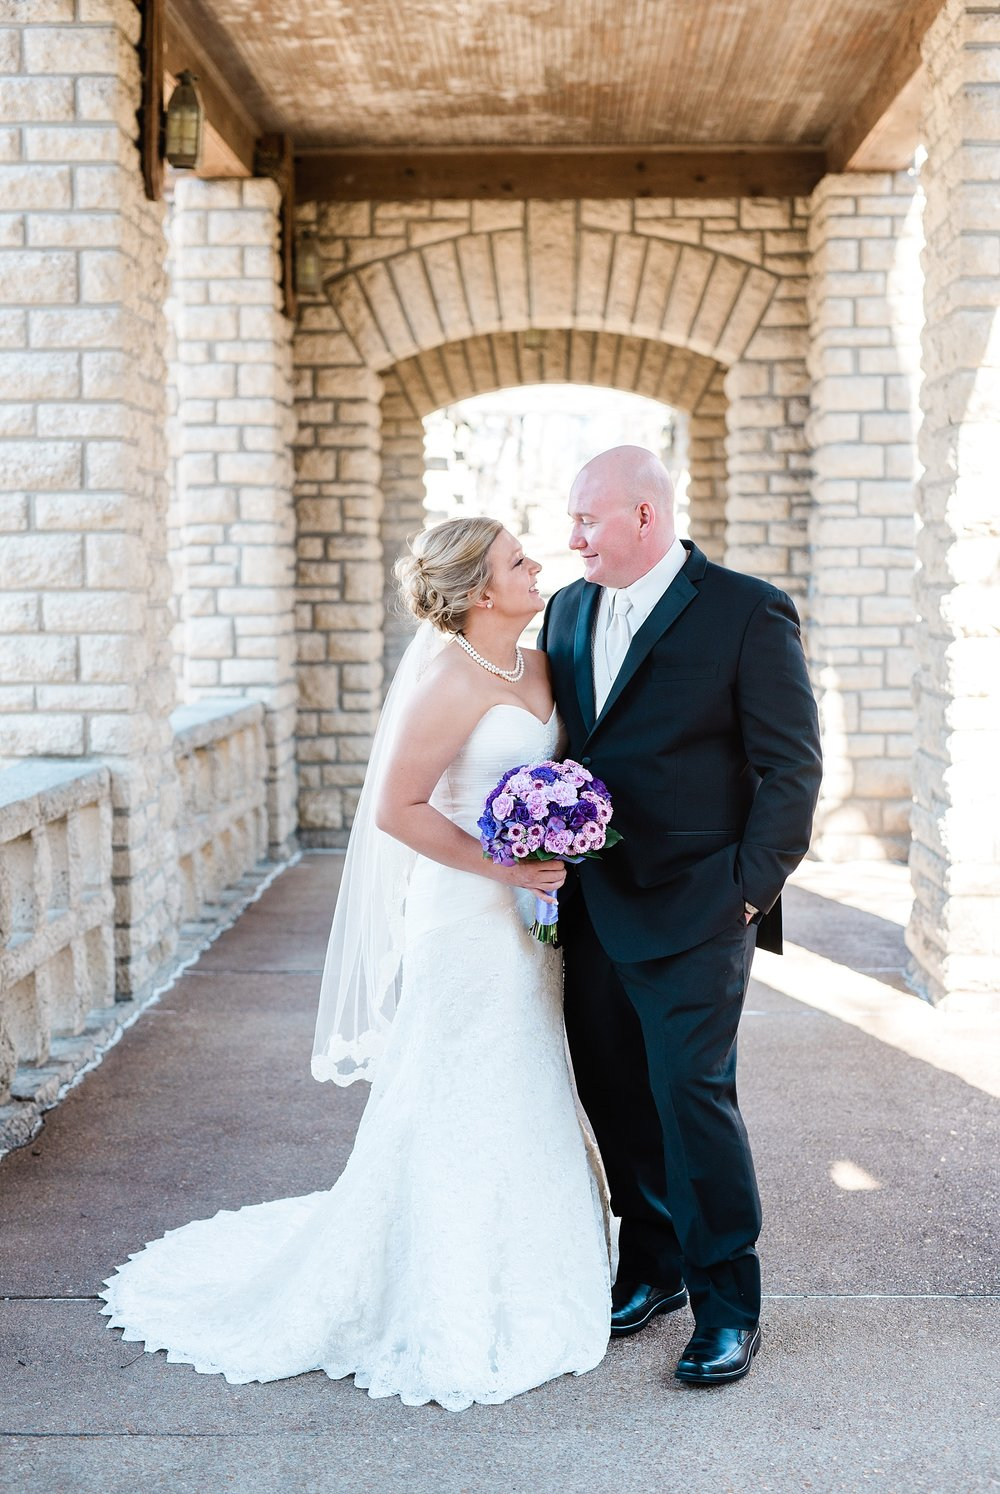 Light and Airy Spring Wedding Downtown Jefferson City Missouri State Capitol Millbottom_0011.jpg